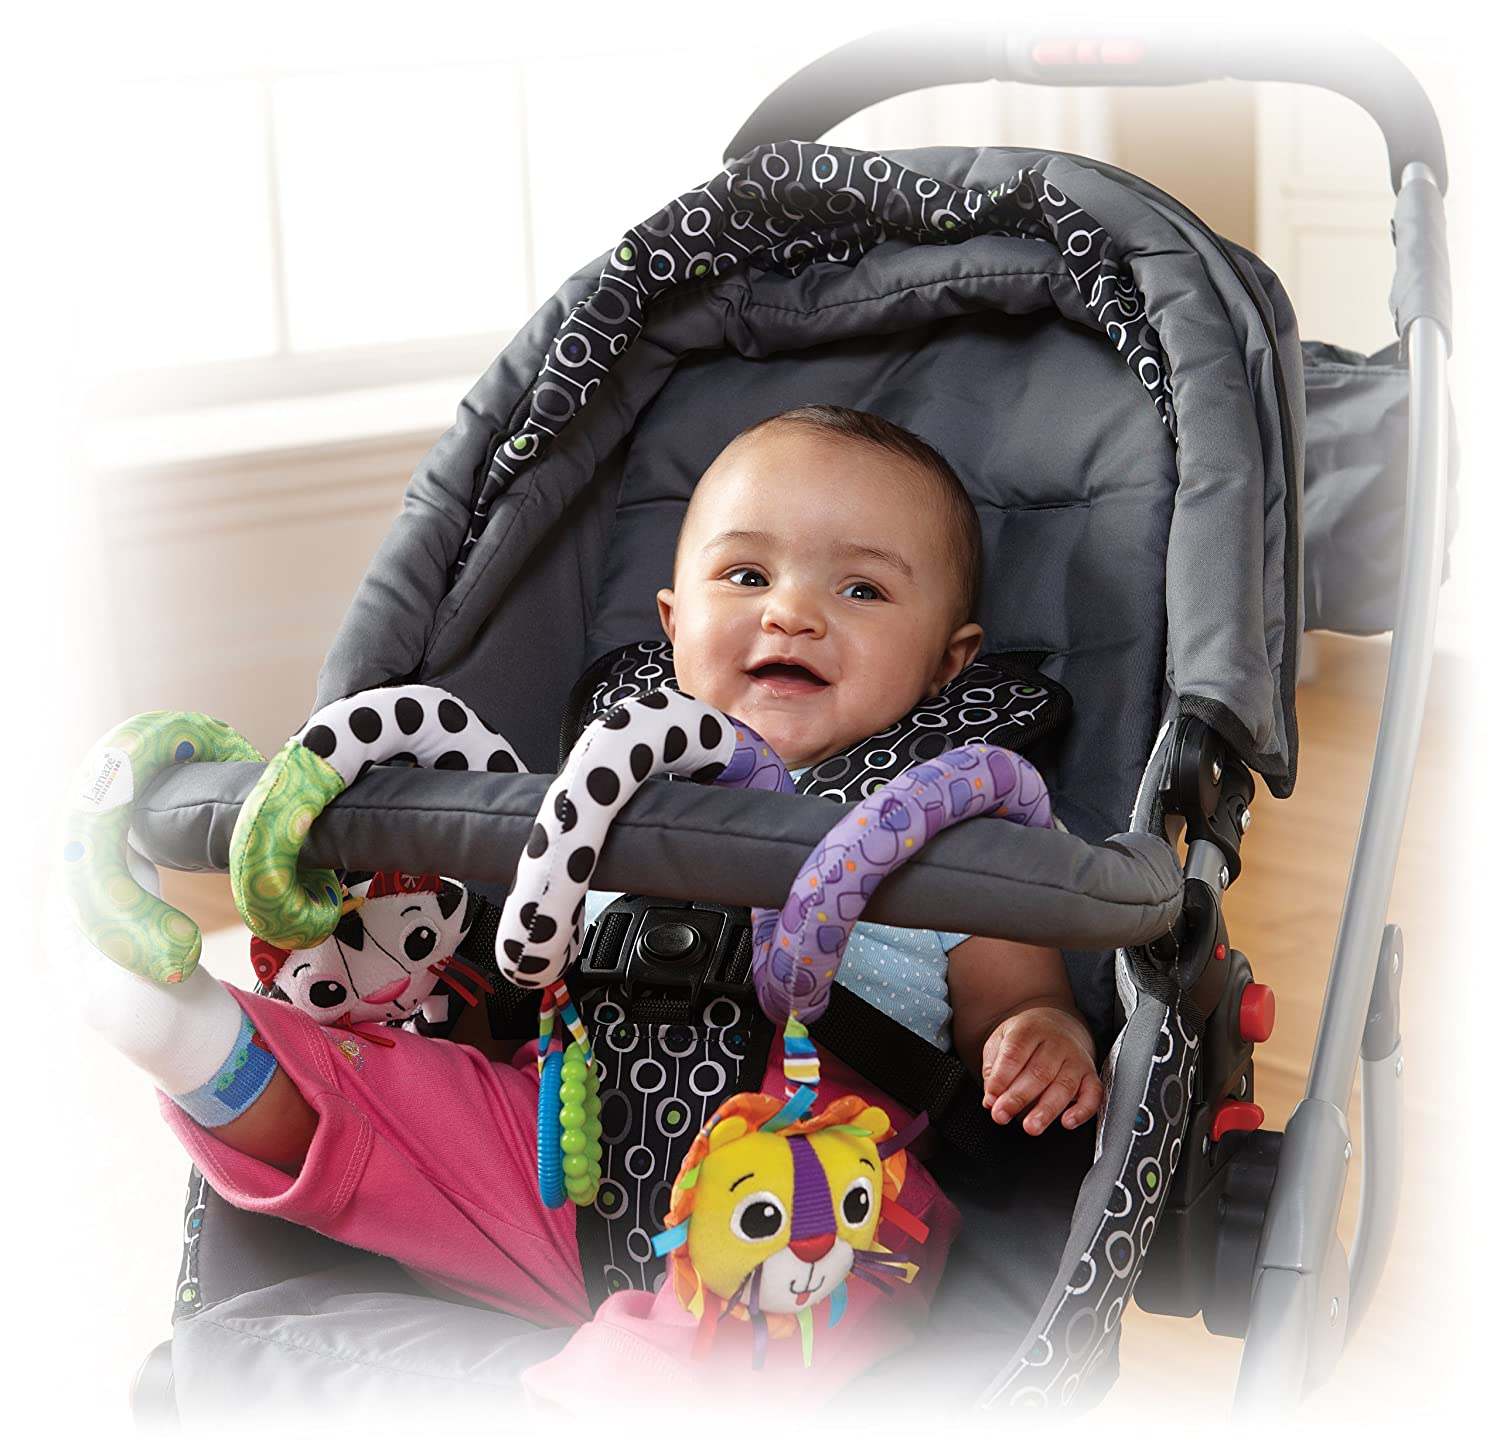 The Best Of Stroller toys for toddlers Pics